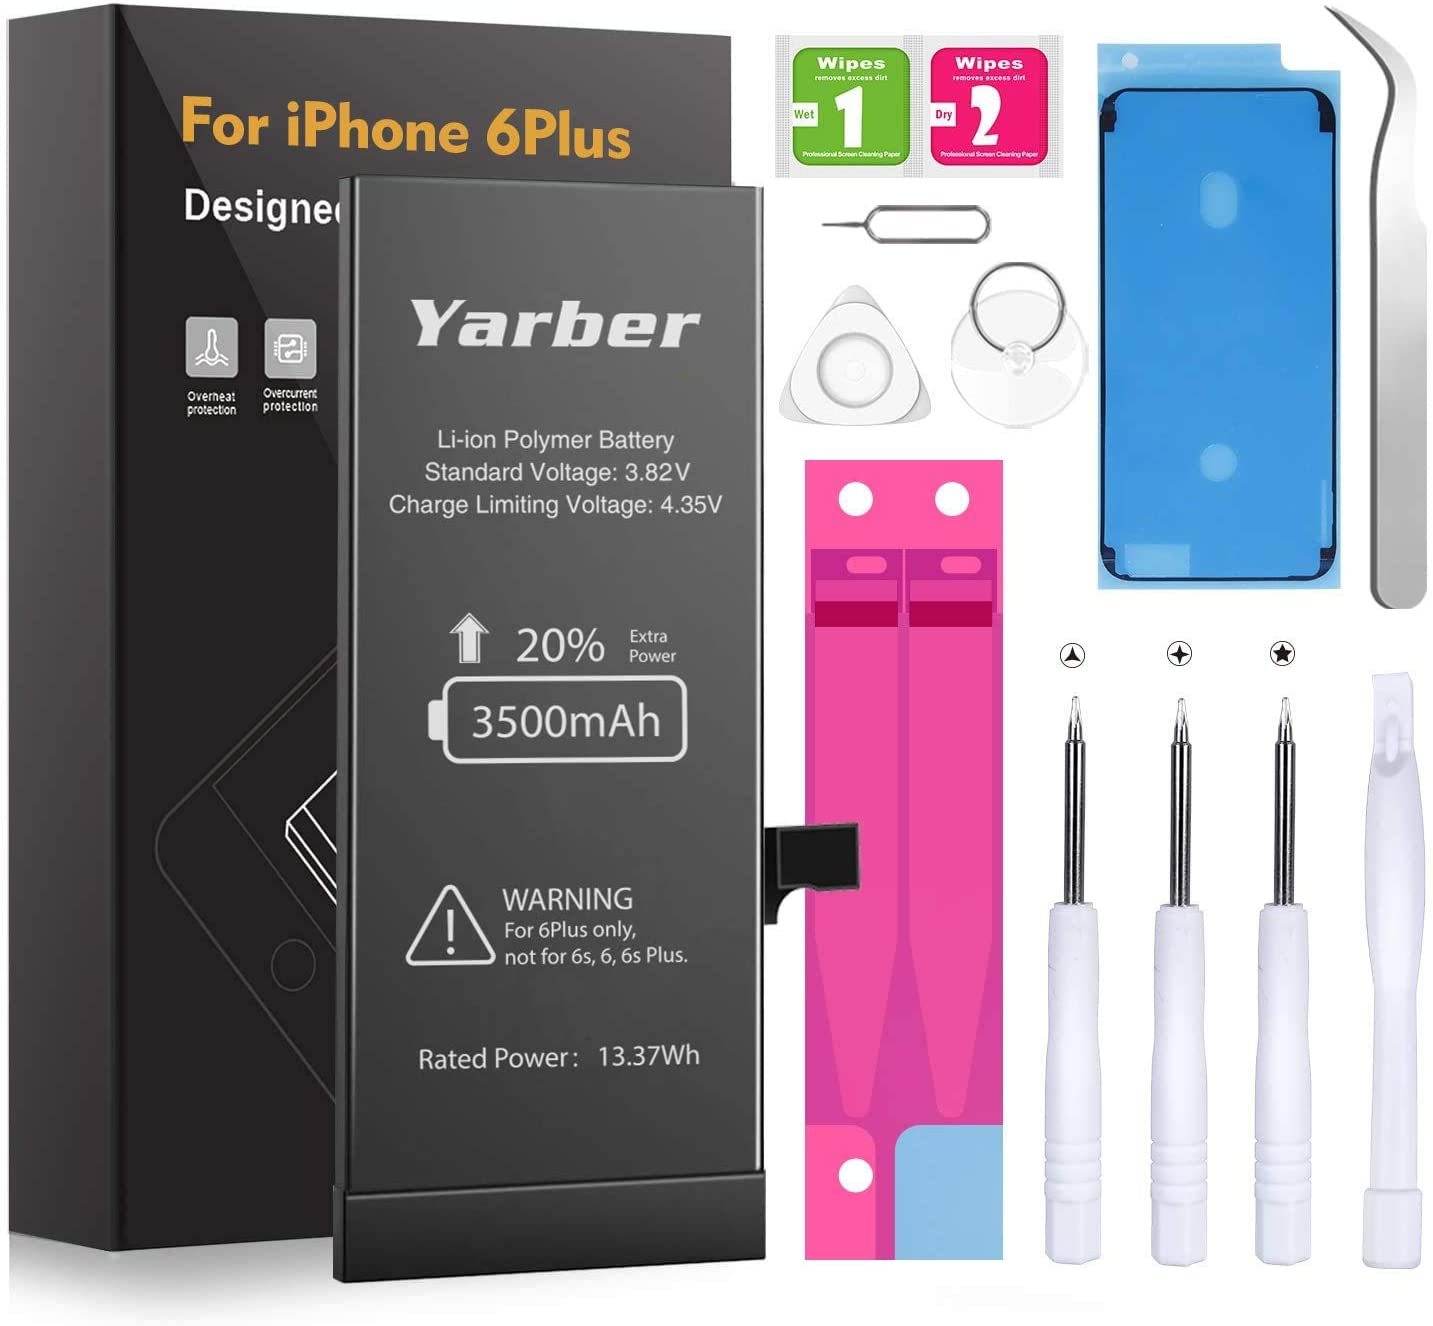 Upgrade iPhone 6 Plus Battery, Yarber 3500mAh High Capacity Li-ion Battery New 0 Cycle, with Complete Replacement Tool Kits